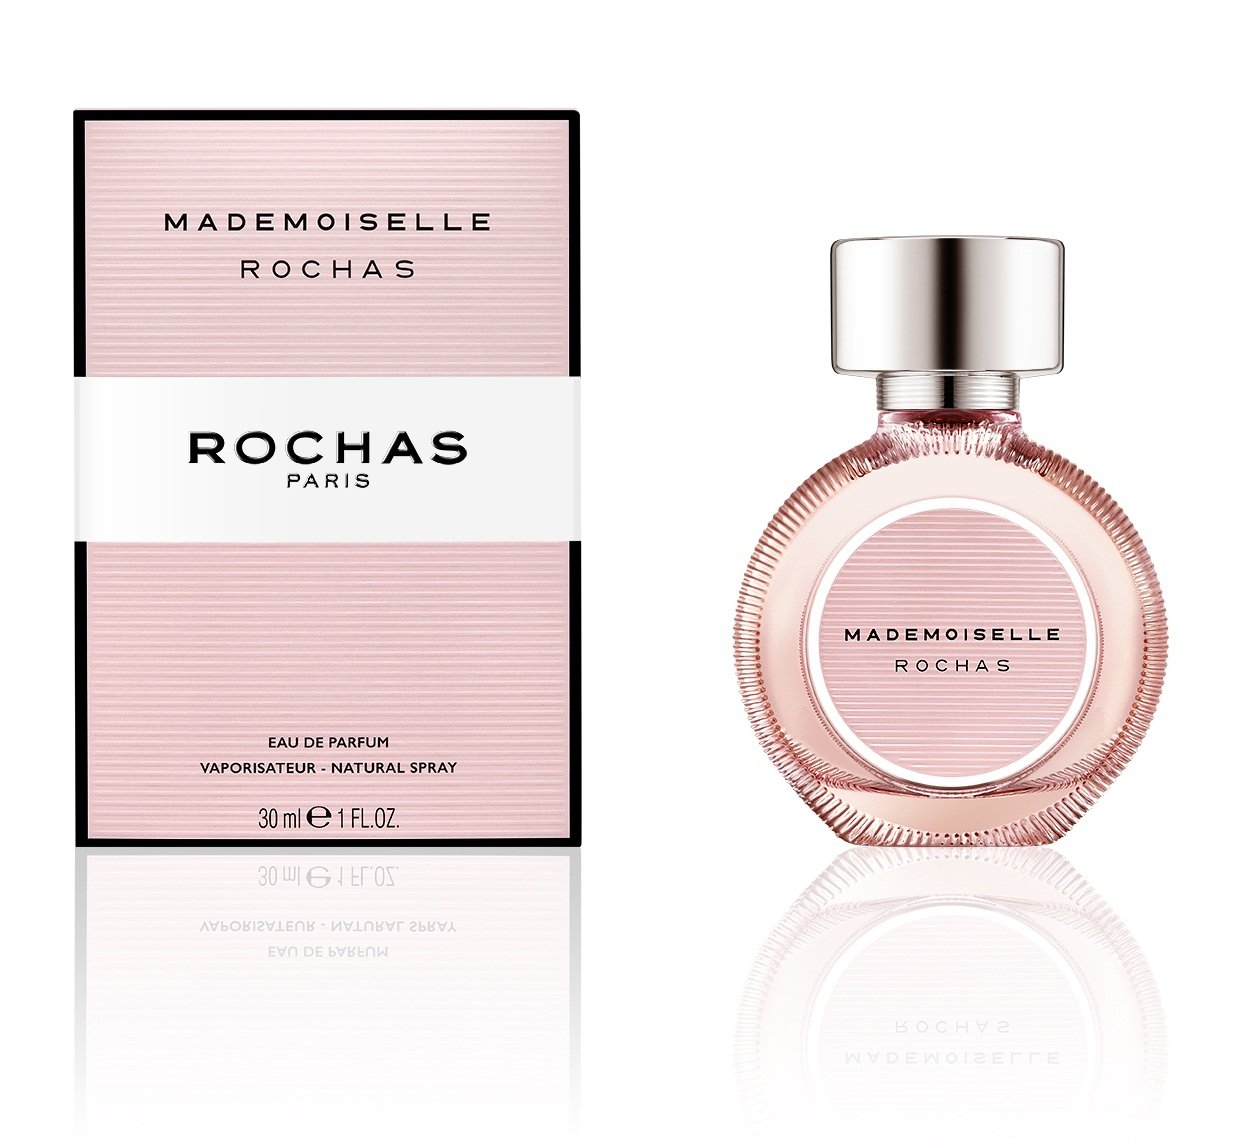 Mademoiselle Rochas ukBeauty Edp co MlAmazon Spray30 lPXTwuOkZi